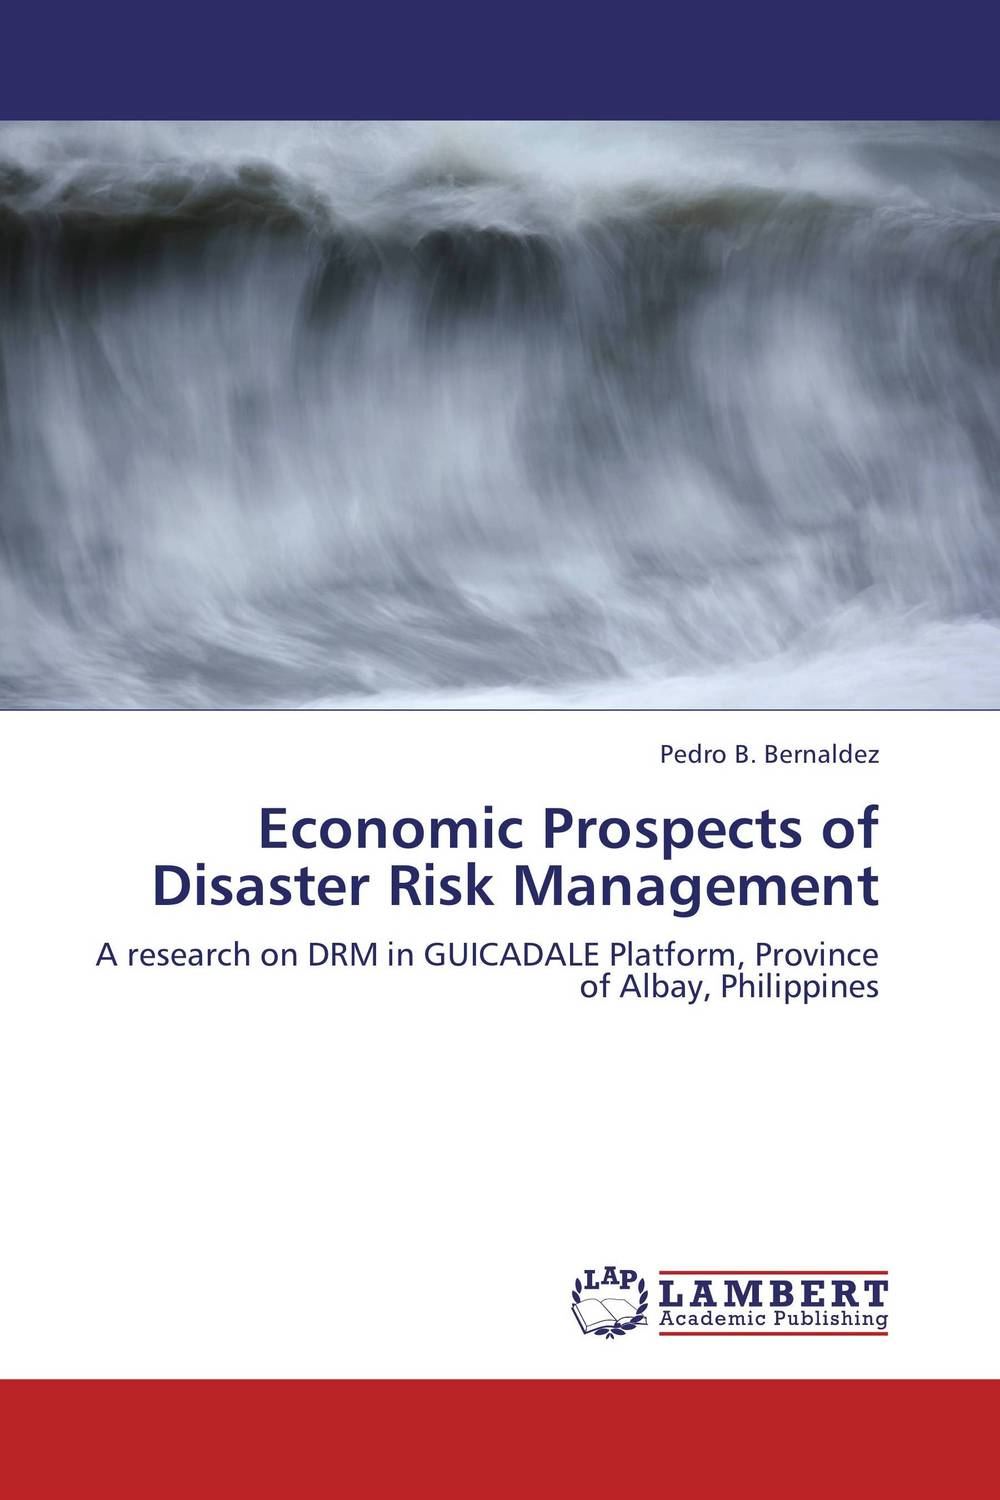 Economic Prospects of Disaster Risk Management suh jude abenwi the economic impact of climate variability